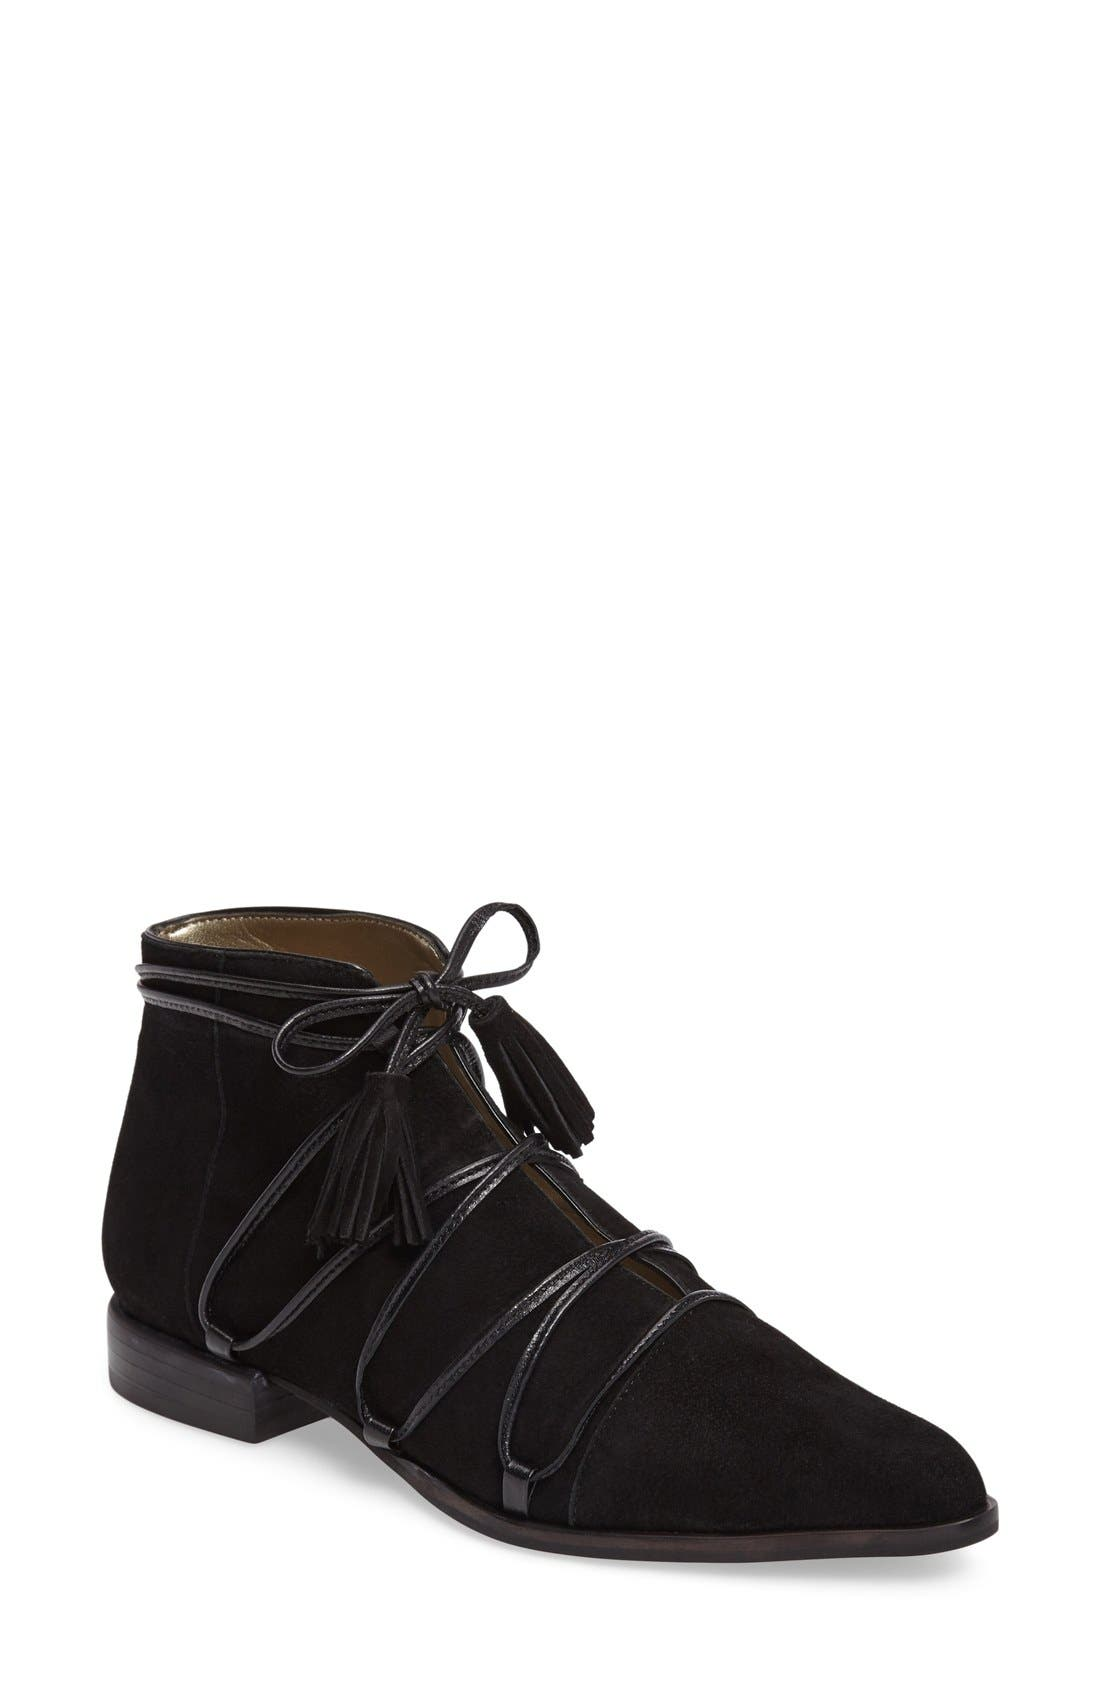 Main Image - French Sole Styles Lace-Up Bootie (Women)